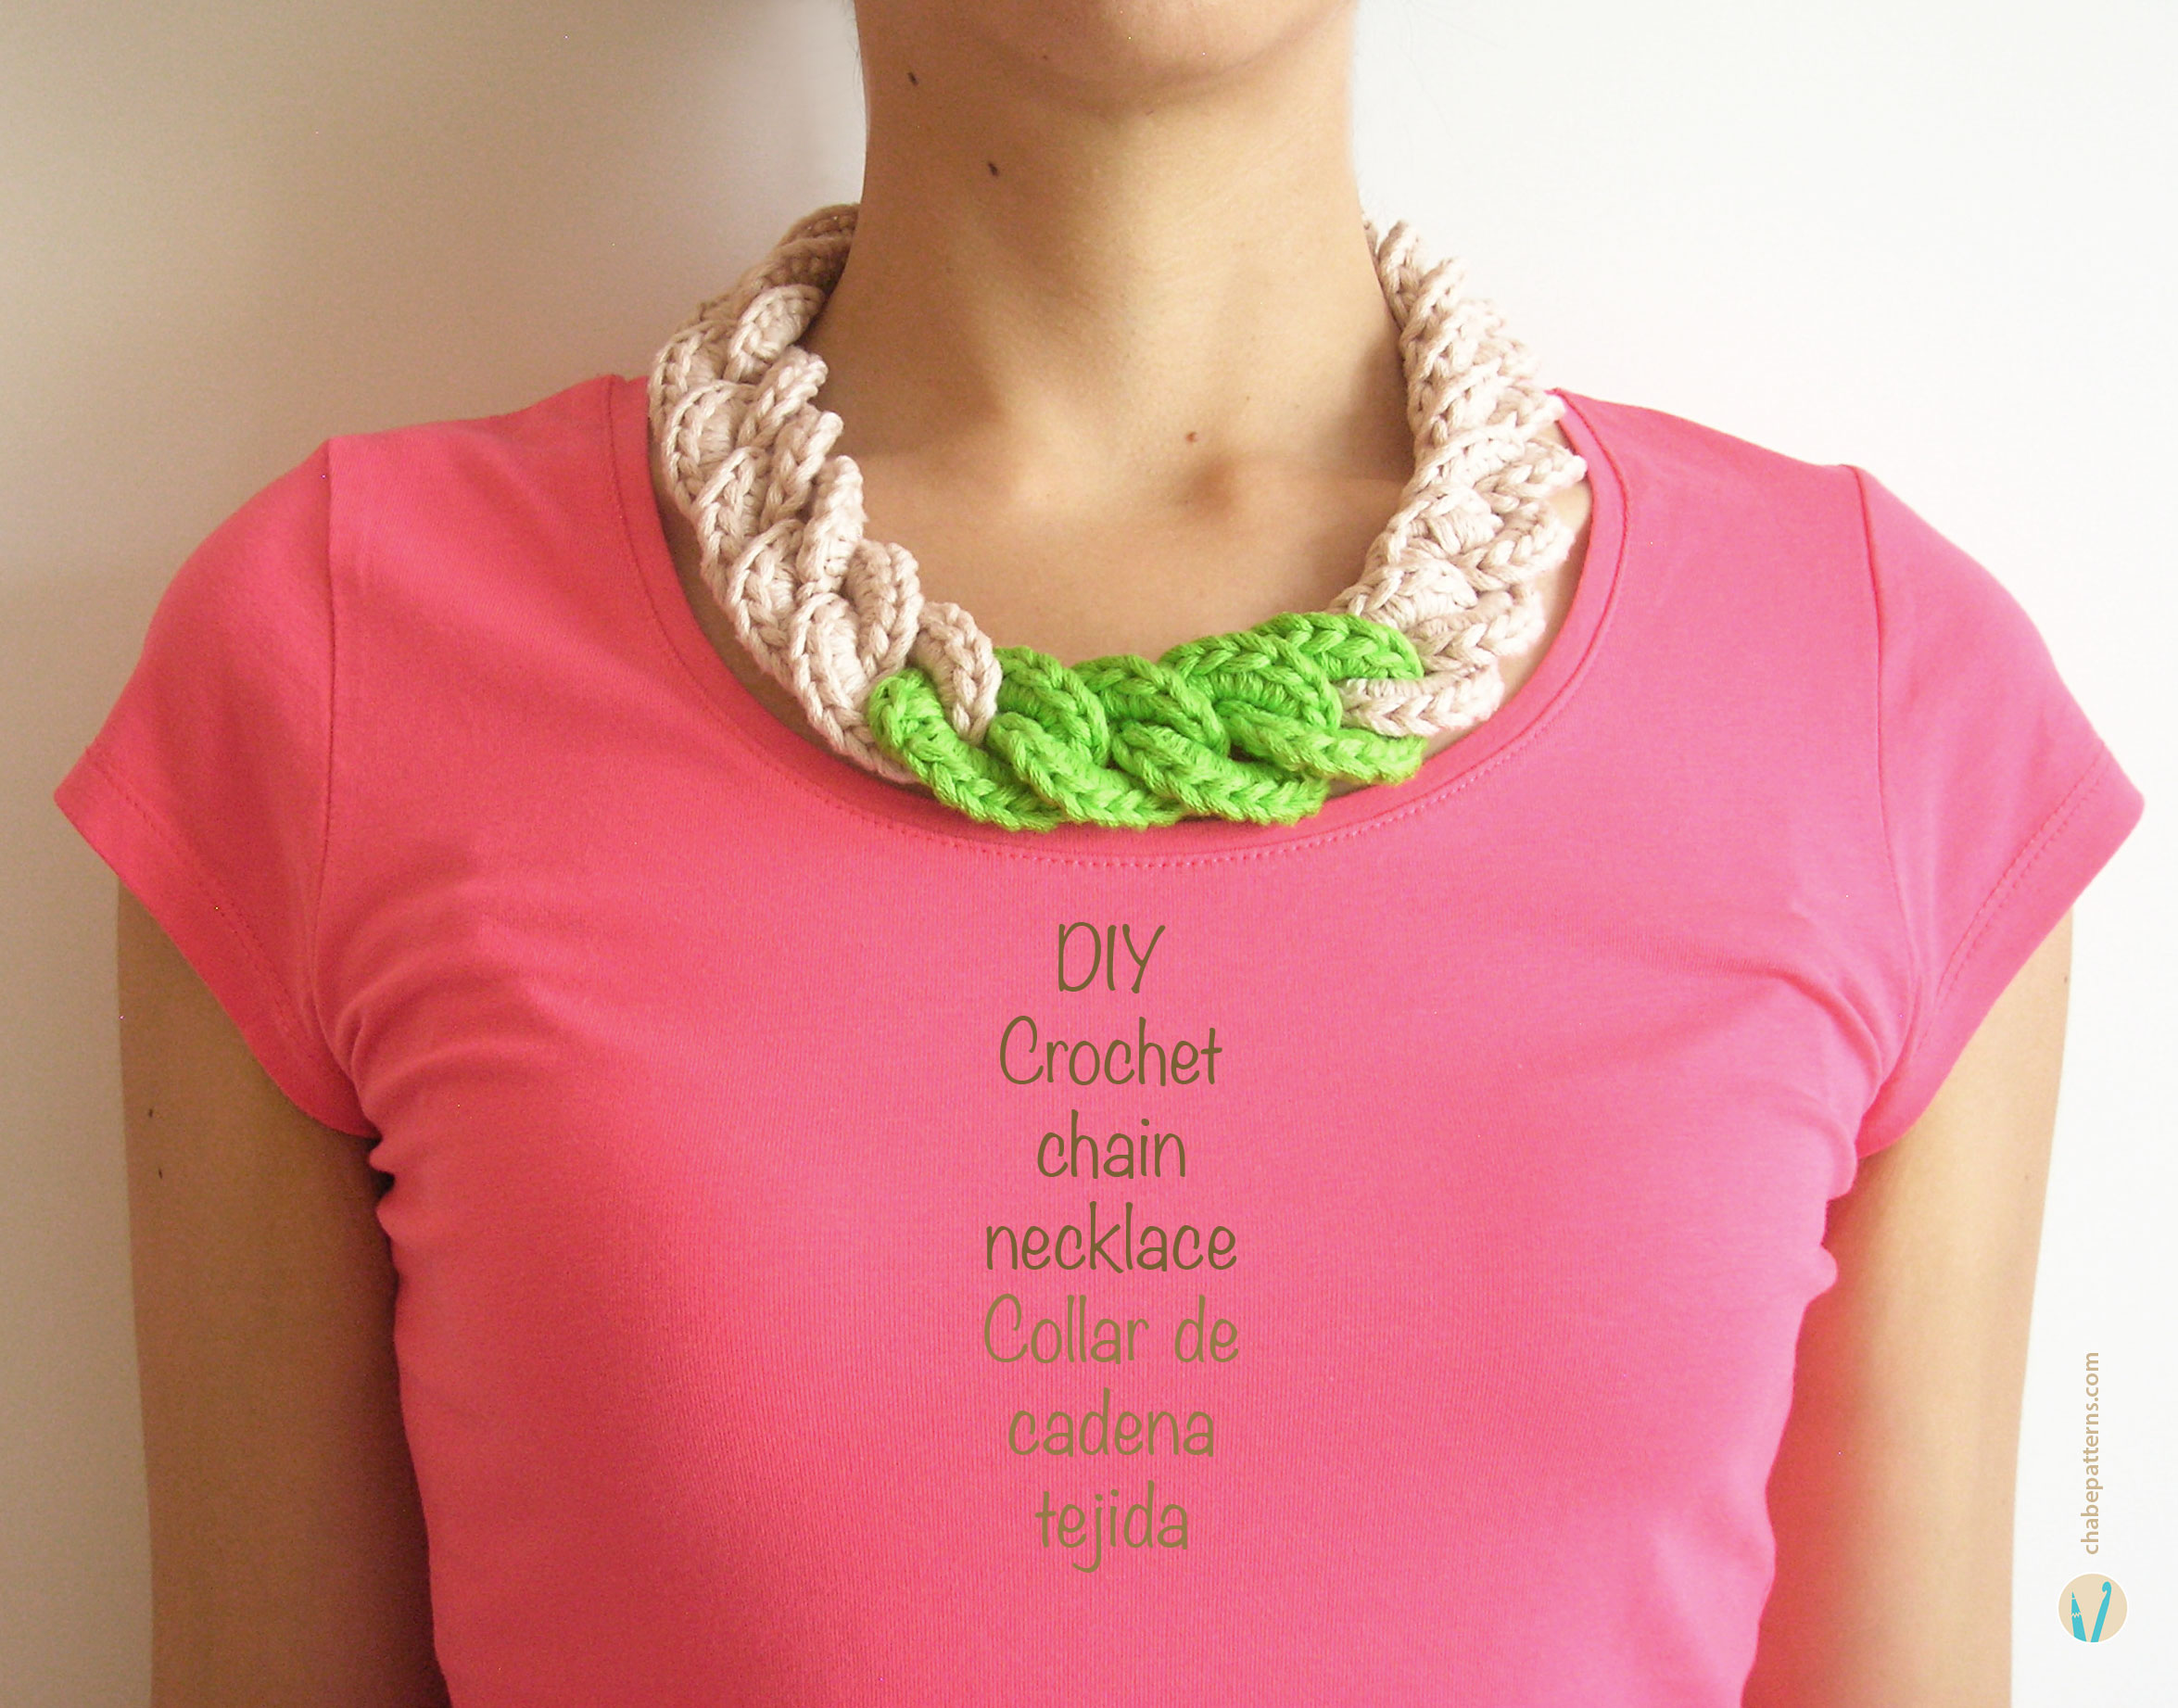 Crochet Stitches Jewelry : Crochet chain necklace / Collar de cadena tejida Chabepatterns